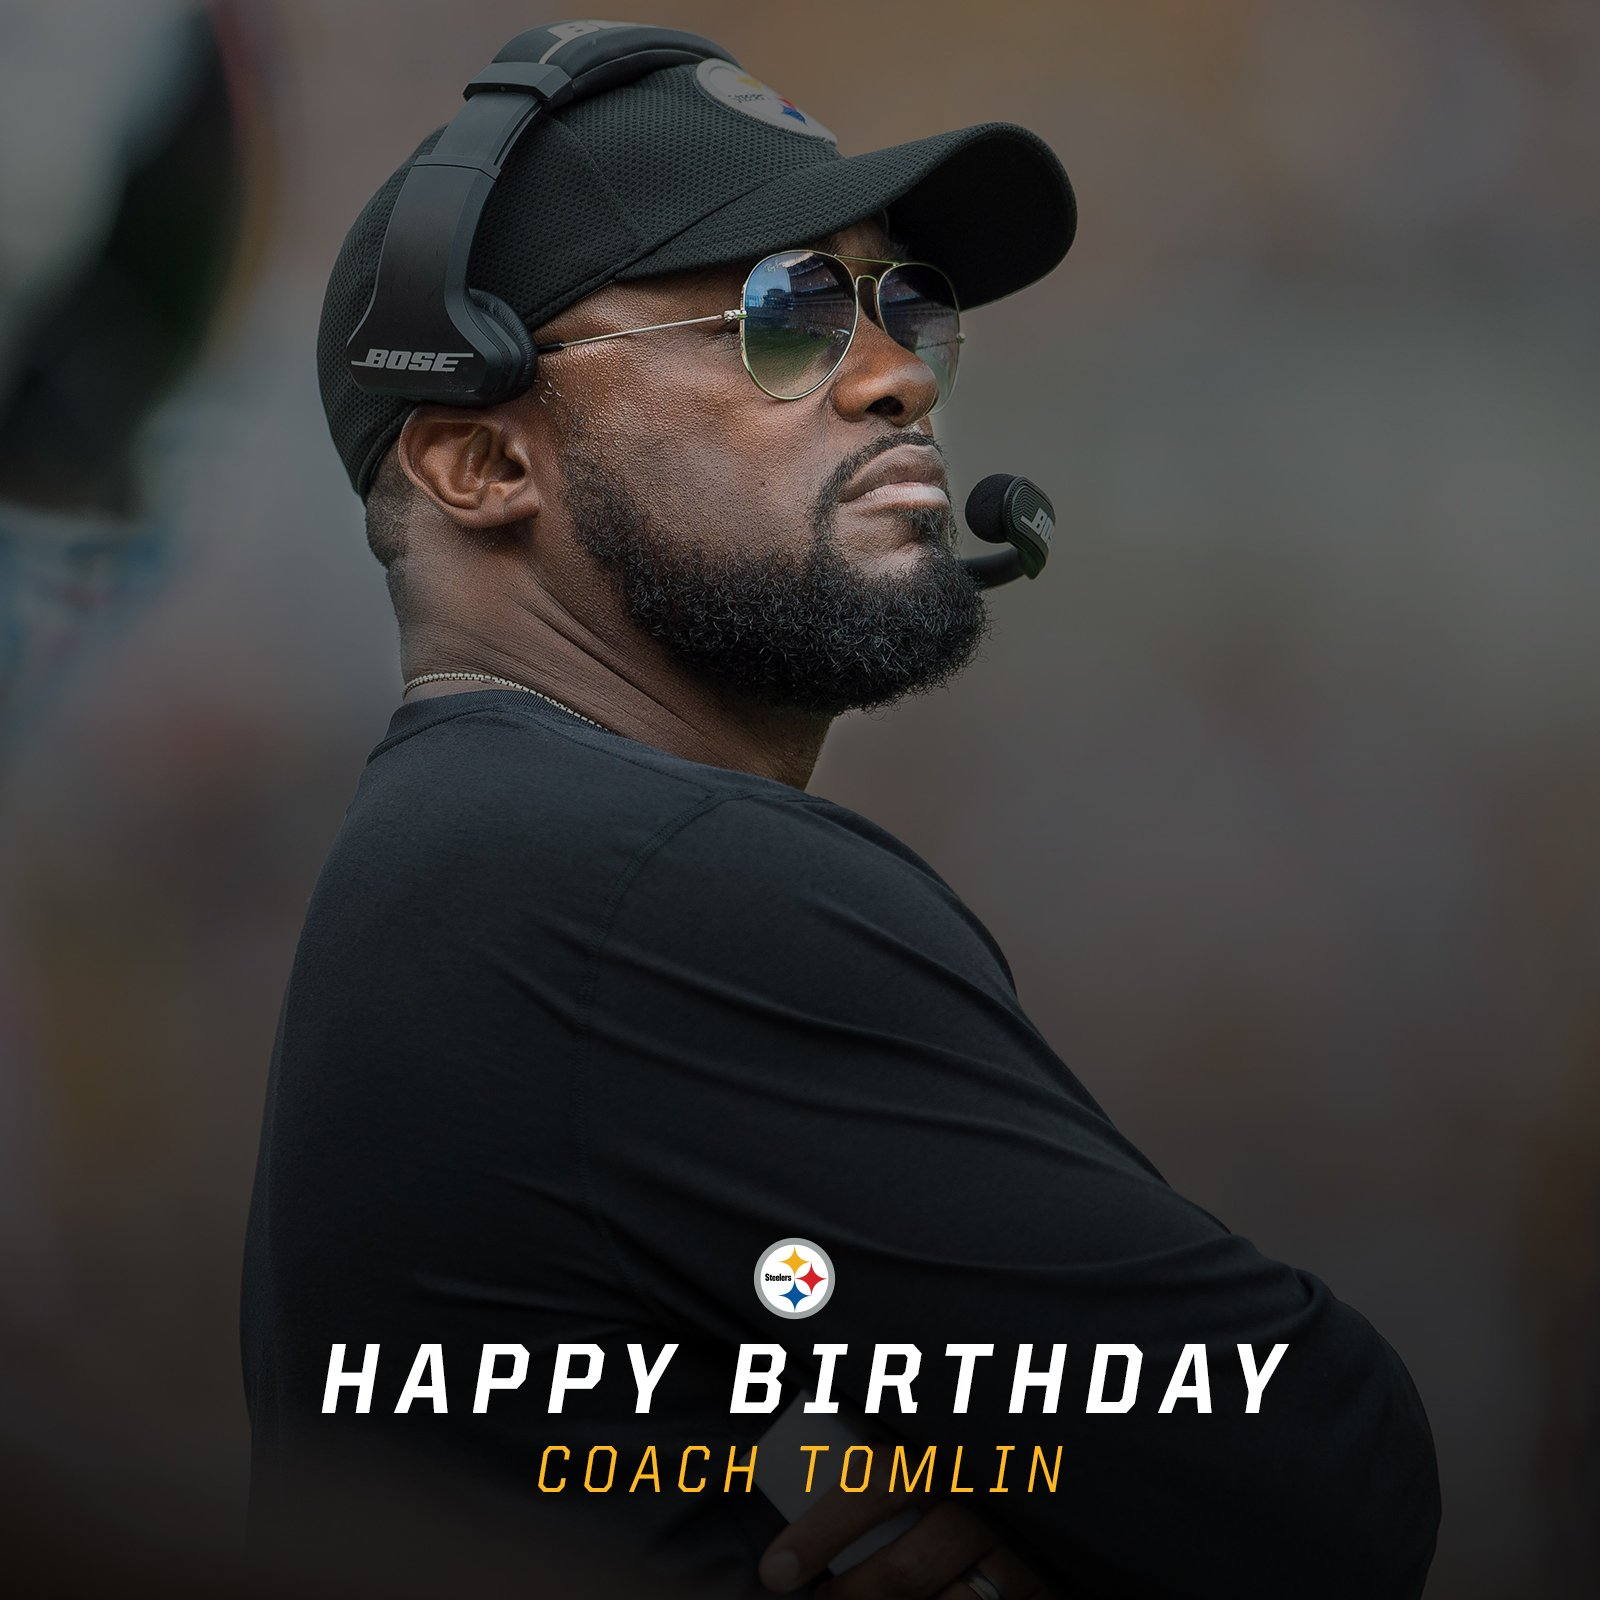 #HappyBirthday Coach‼️ https://t.co/elYkuO626D